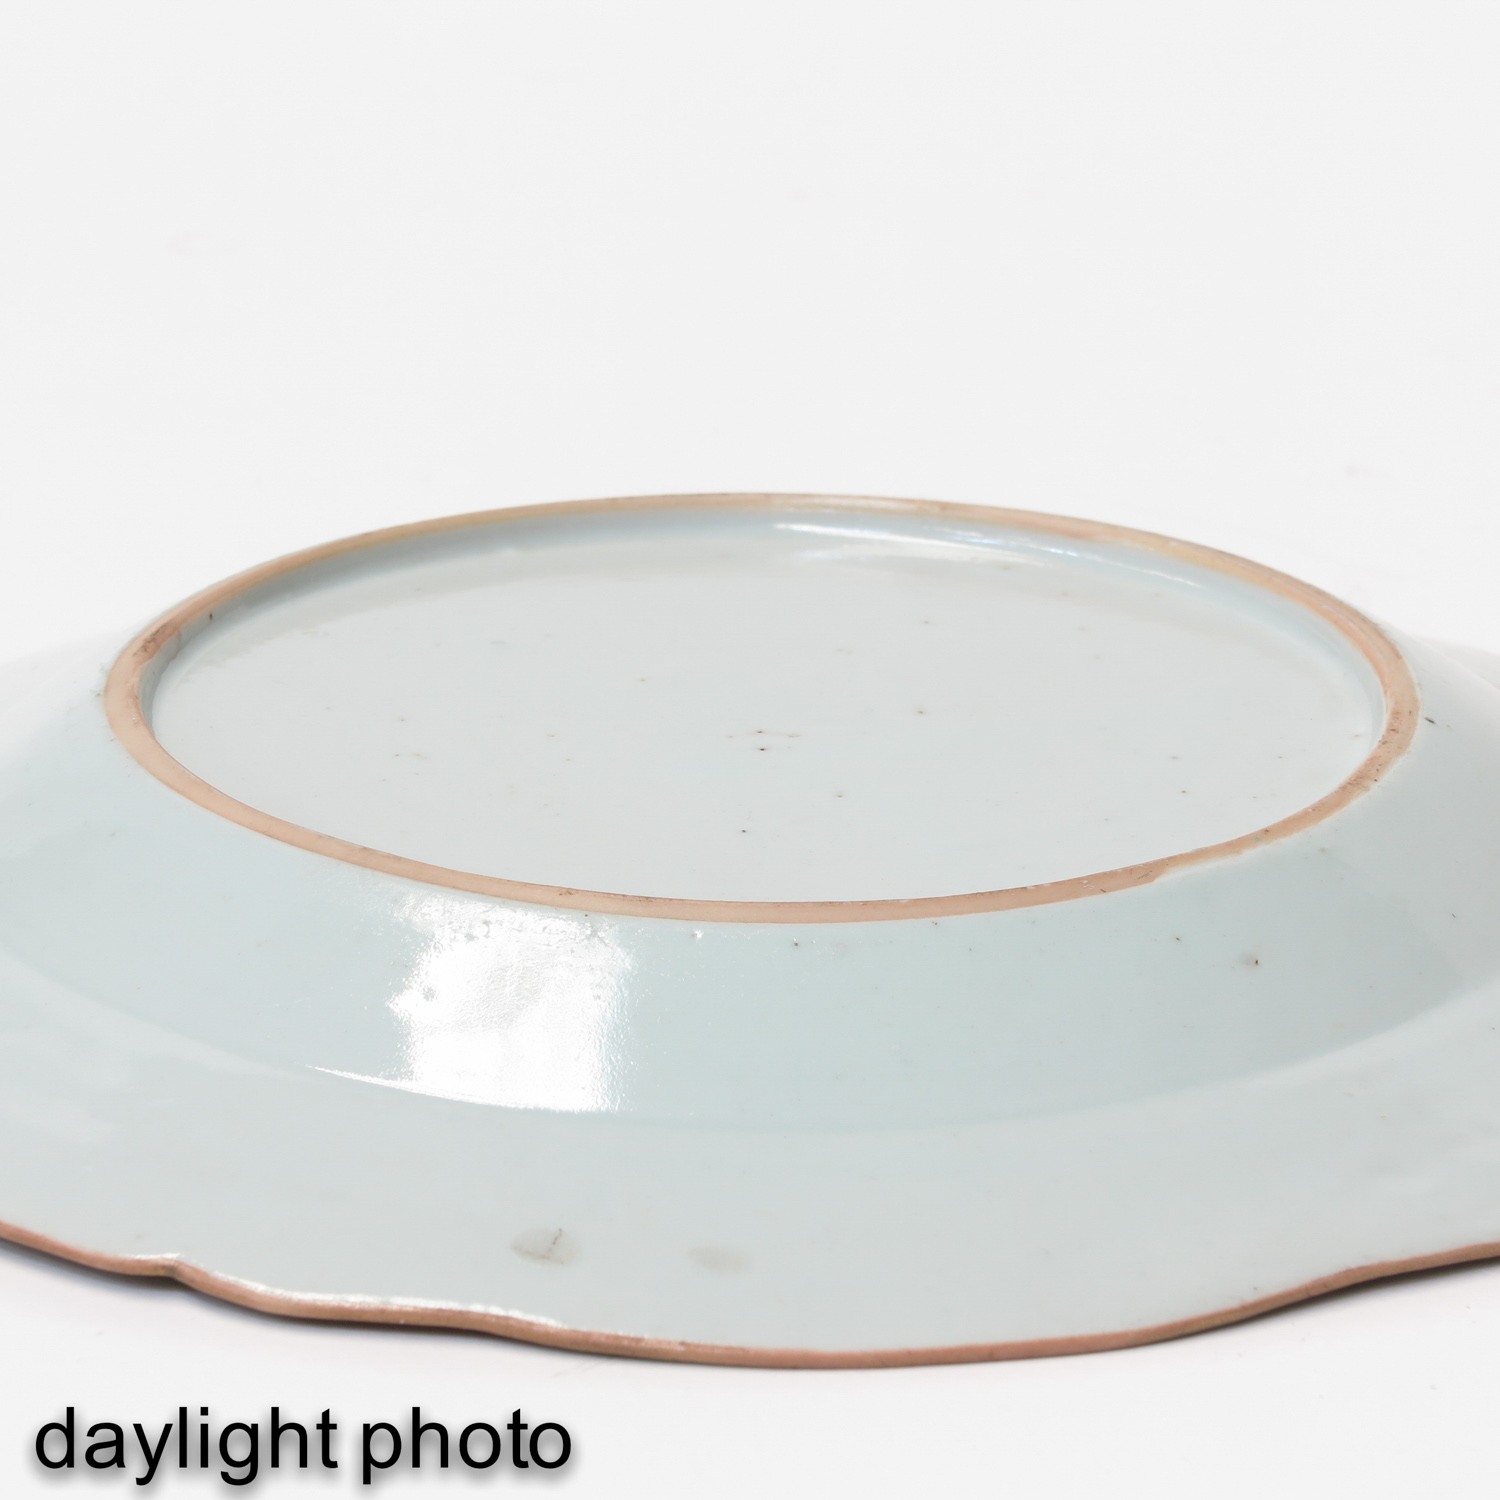 A Series of 5 Famille Rose Plates - Image 8 of 9